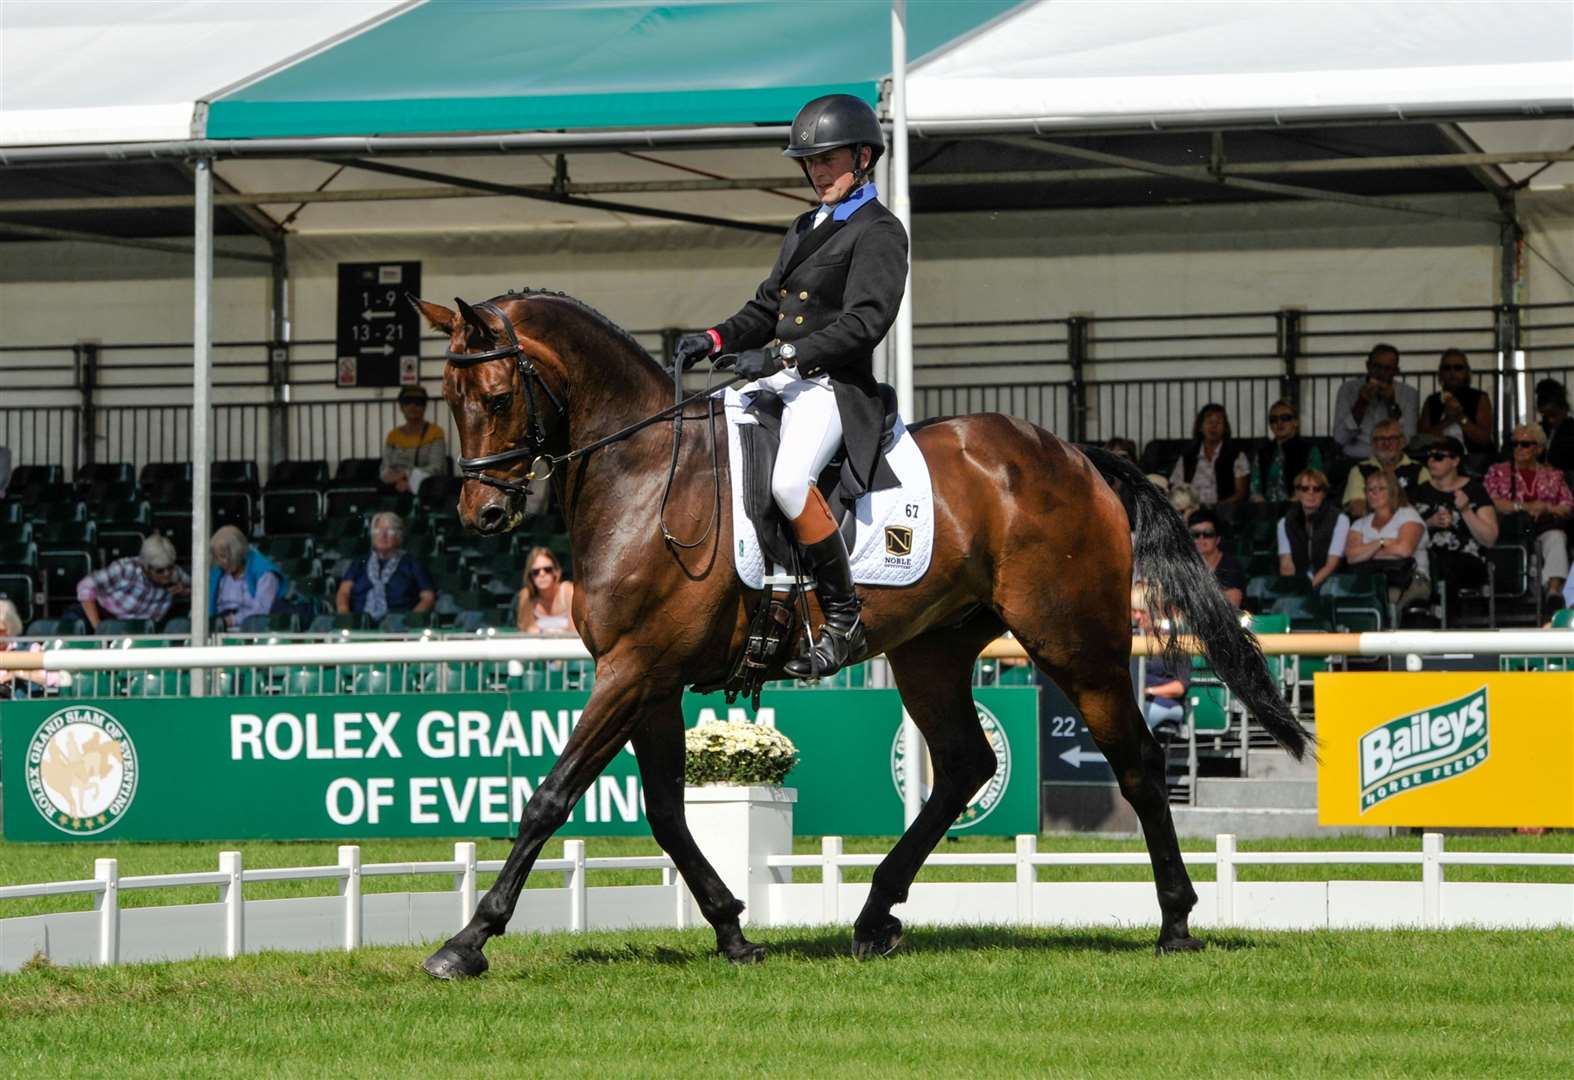 New challenge for Grieve on return to familiar territory at Burghley